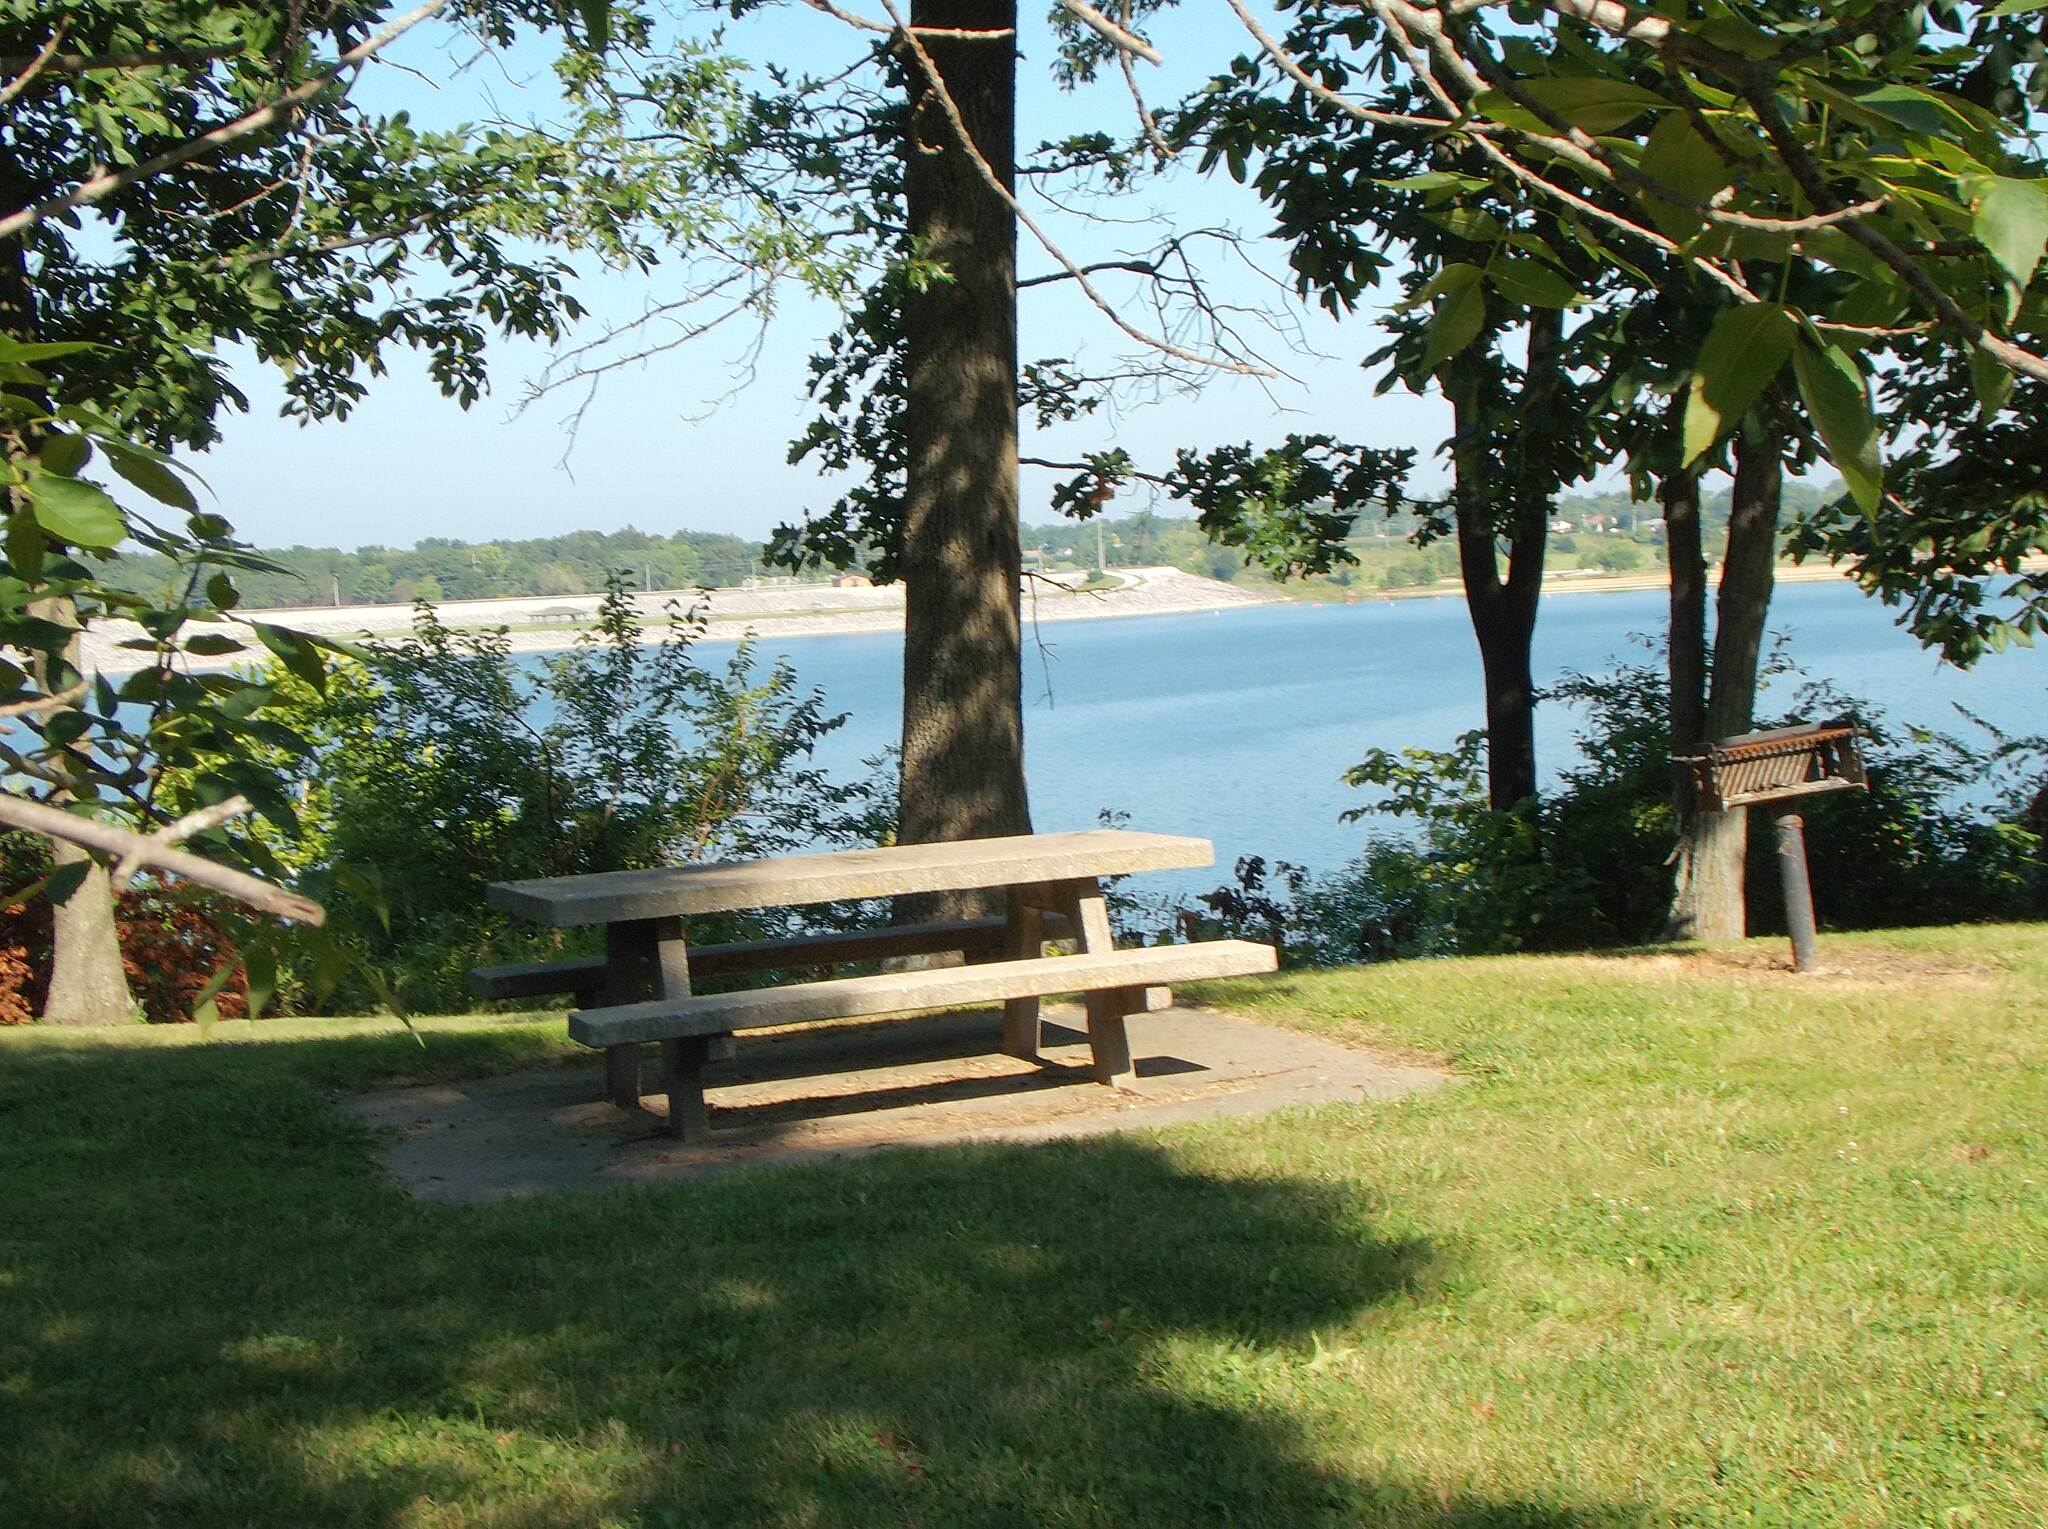 General Dacey Trail Trailside Picnic, Anyone? Complete with shade and beautiful view of lake from COE park, east of the dam.